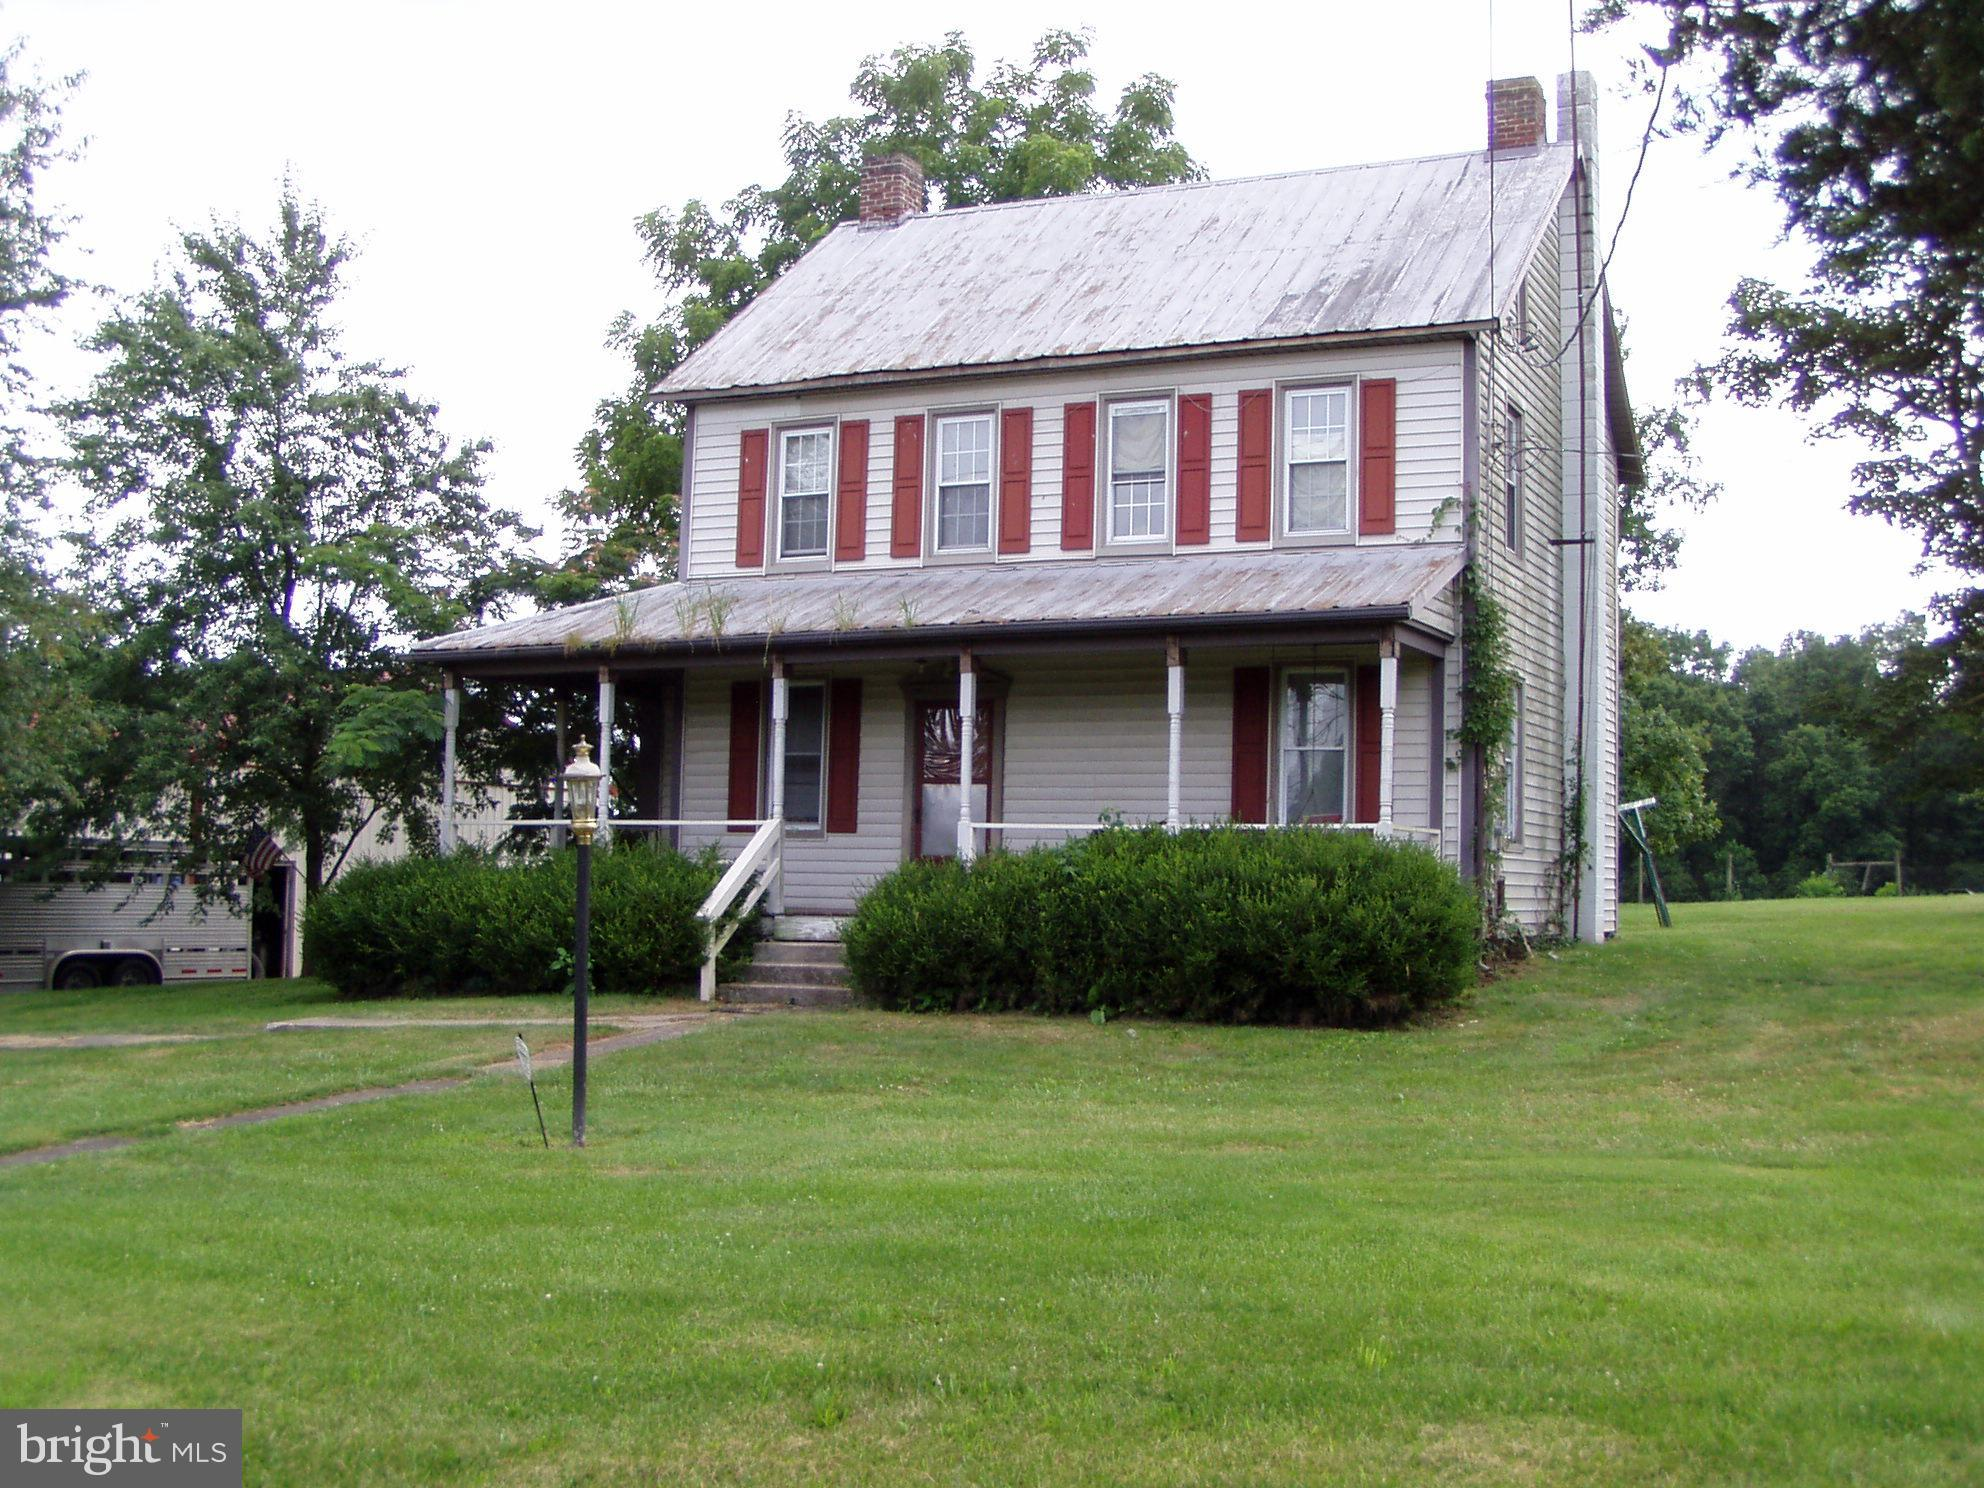 166 CENTER MILLS ROAD, ASPERS, PA 17304